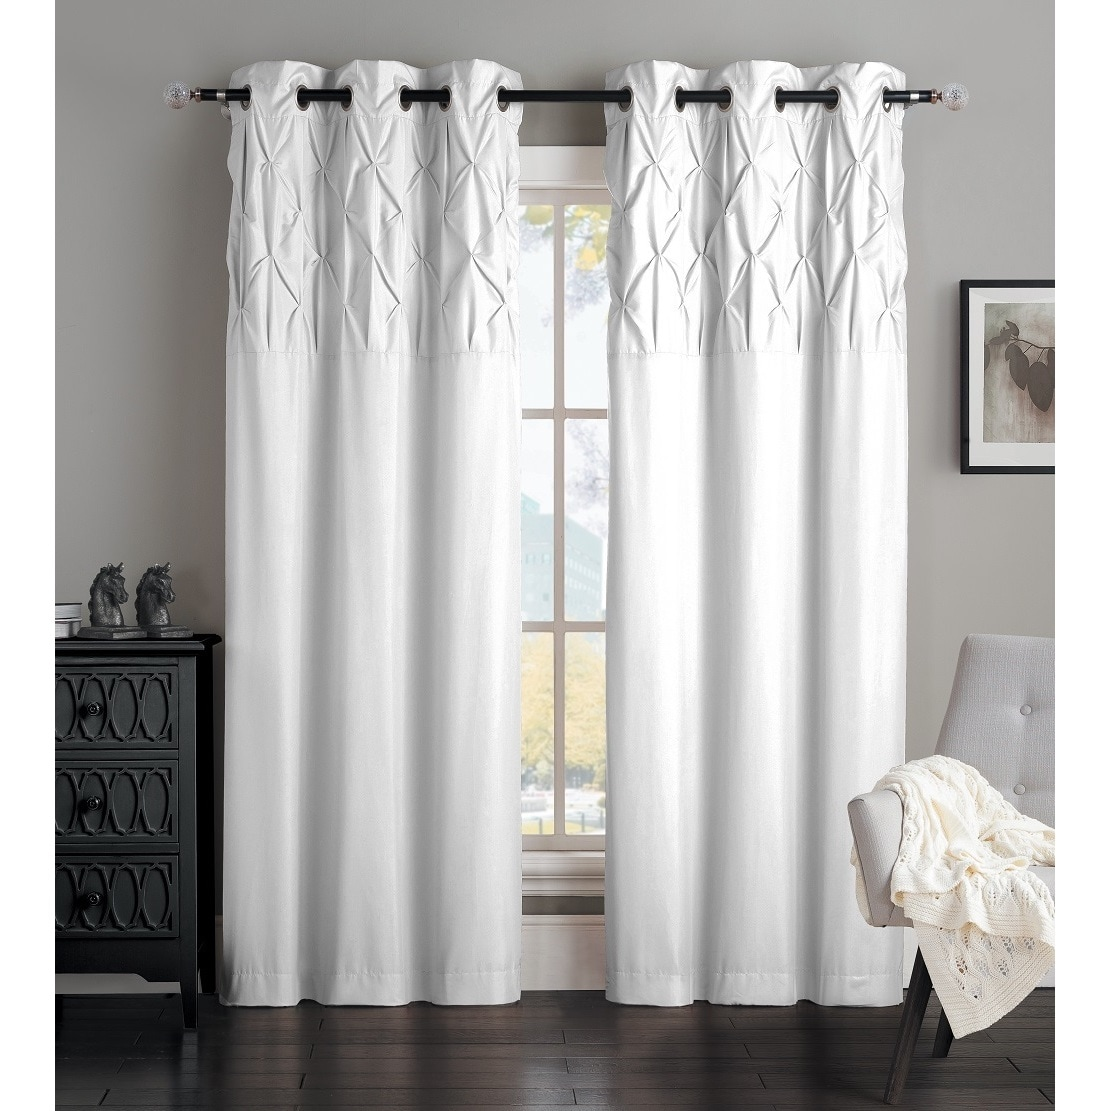 Avondale Manor Ella Curtain Panel Pair - Free Shipping On Orders Over $45 -  Overstock.com - 17706511